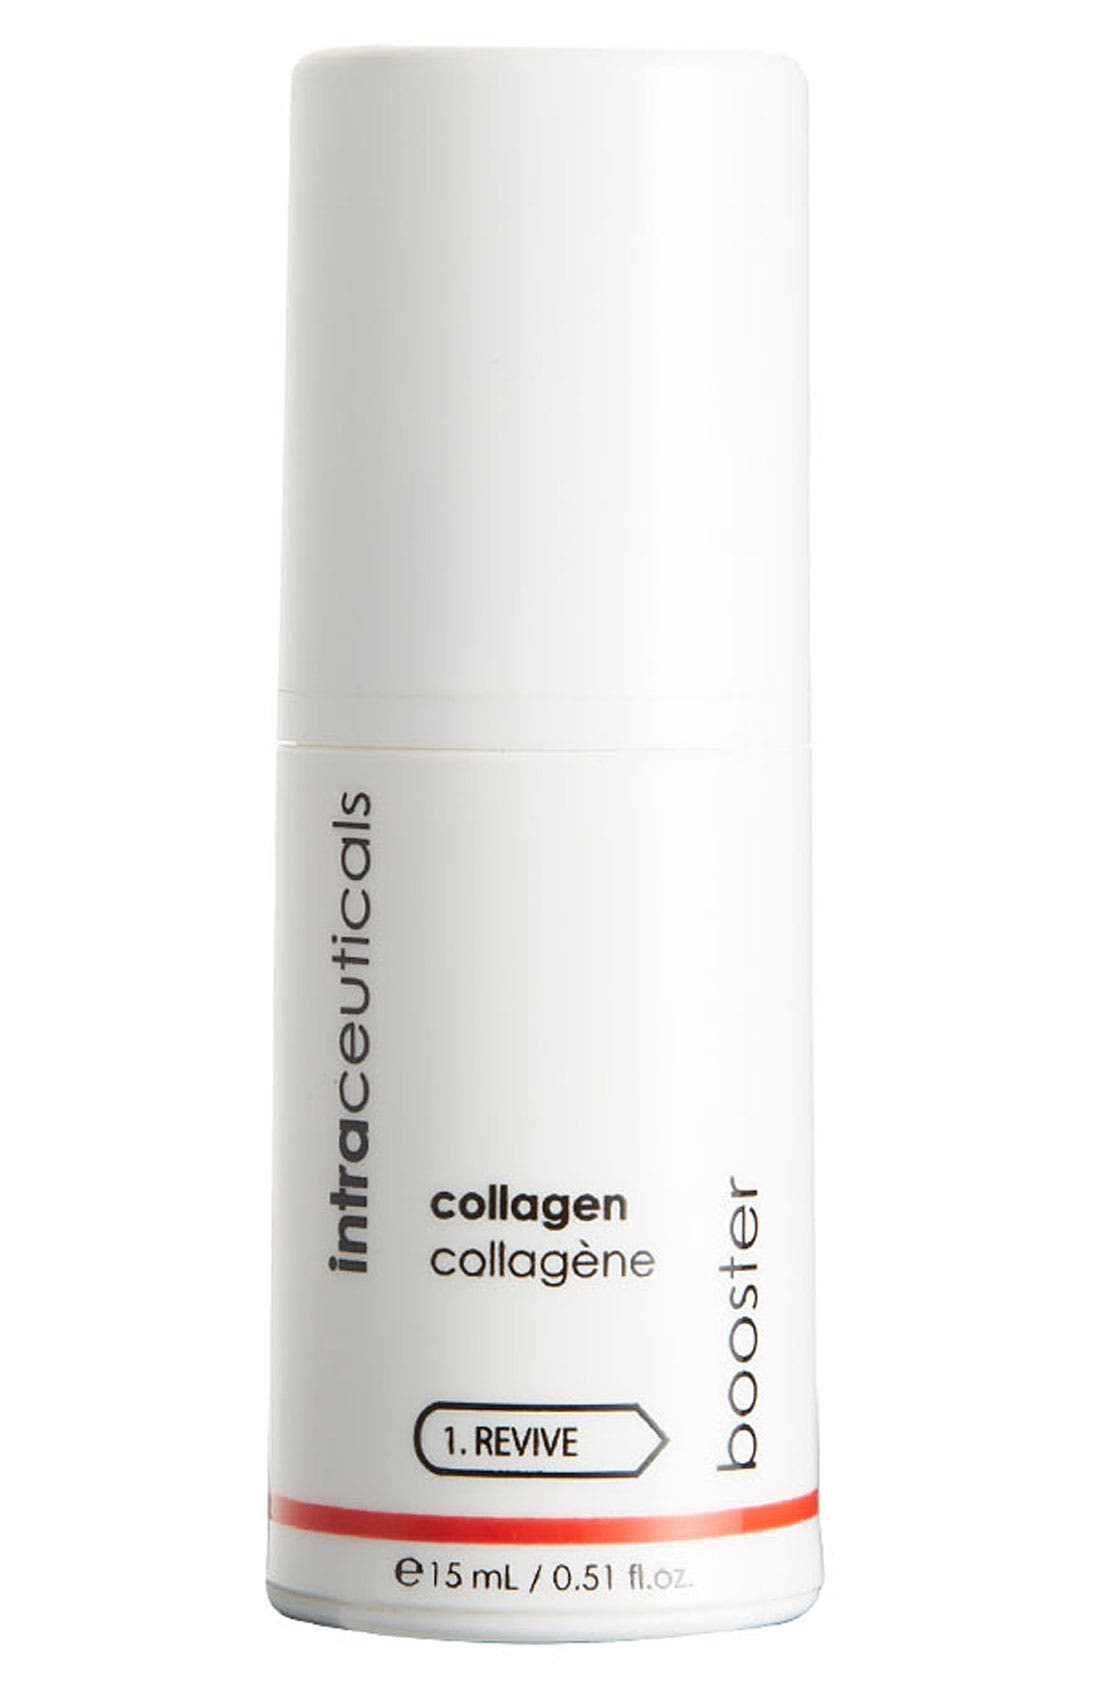 'Booster' Collagen Serum,                         Main,                         color, 000